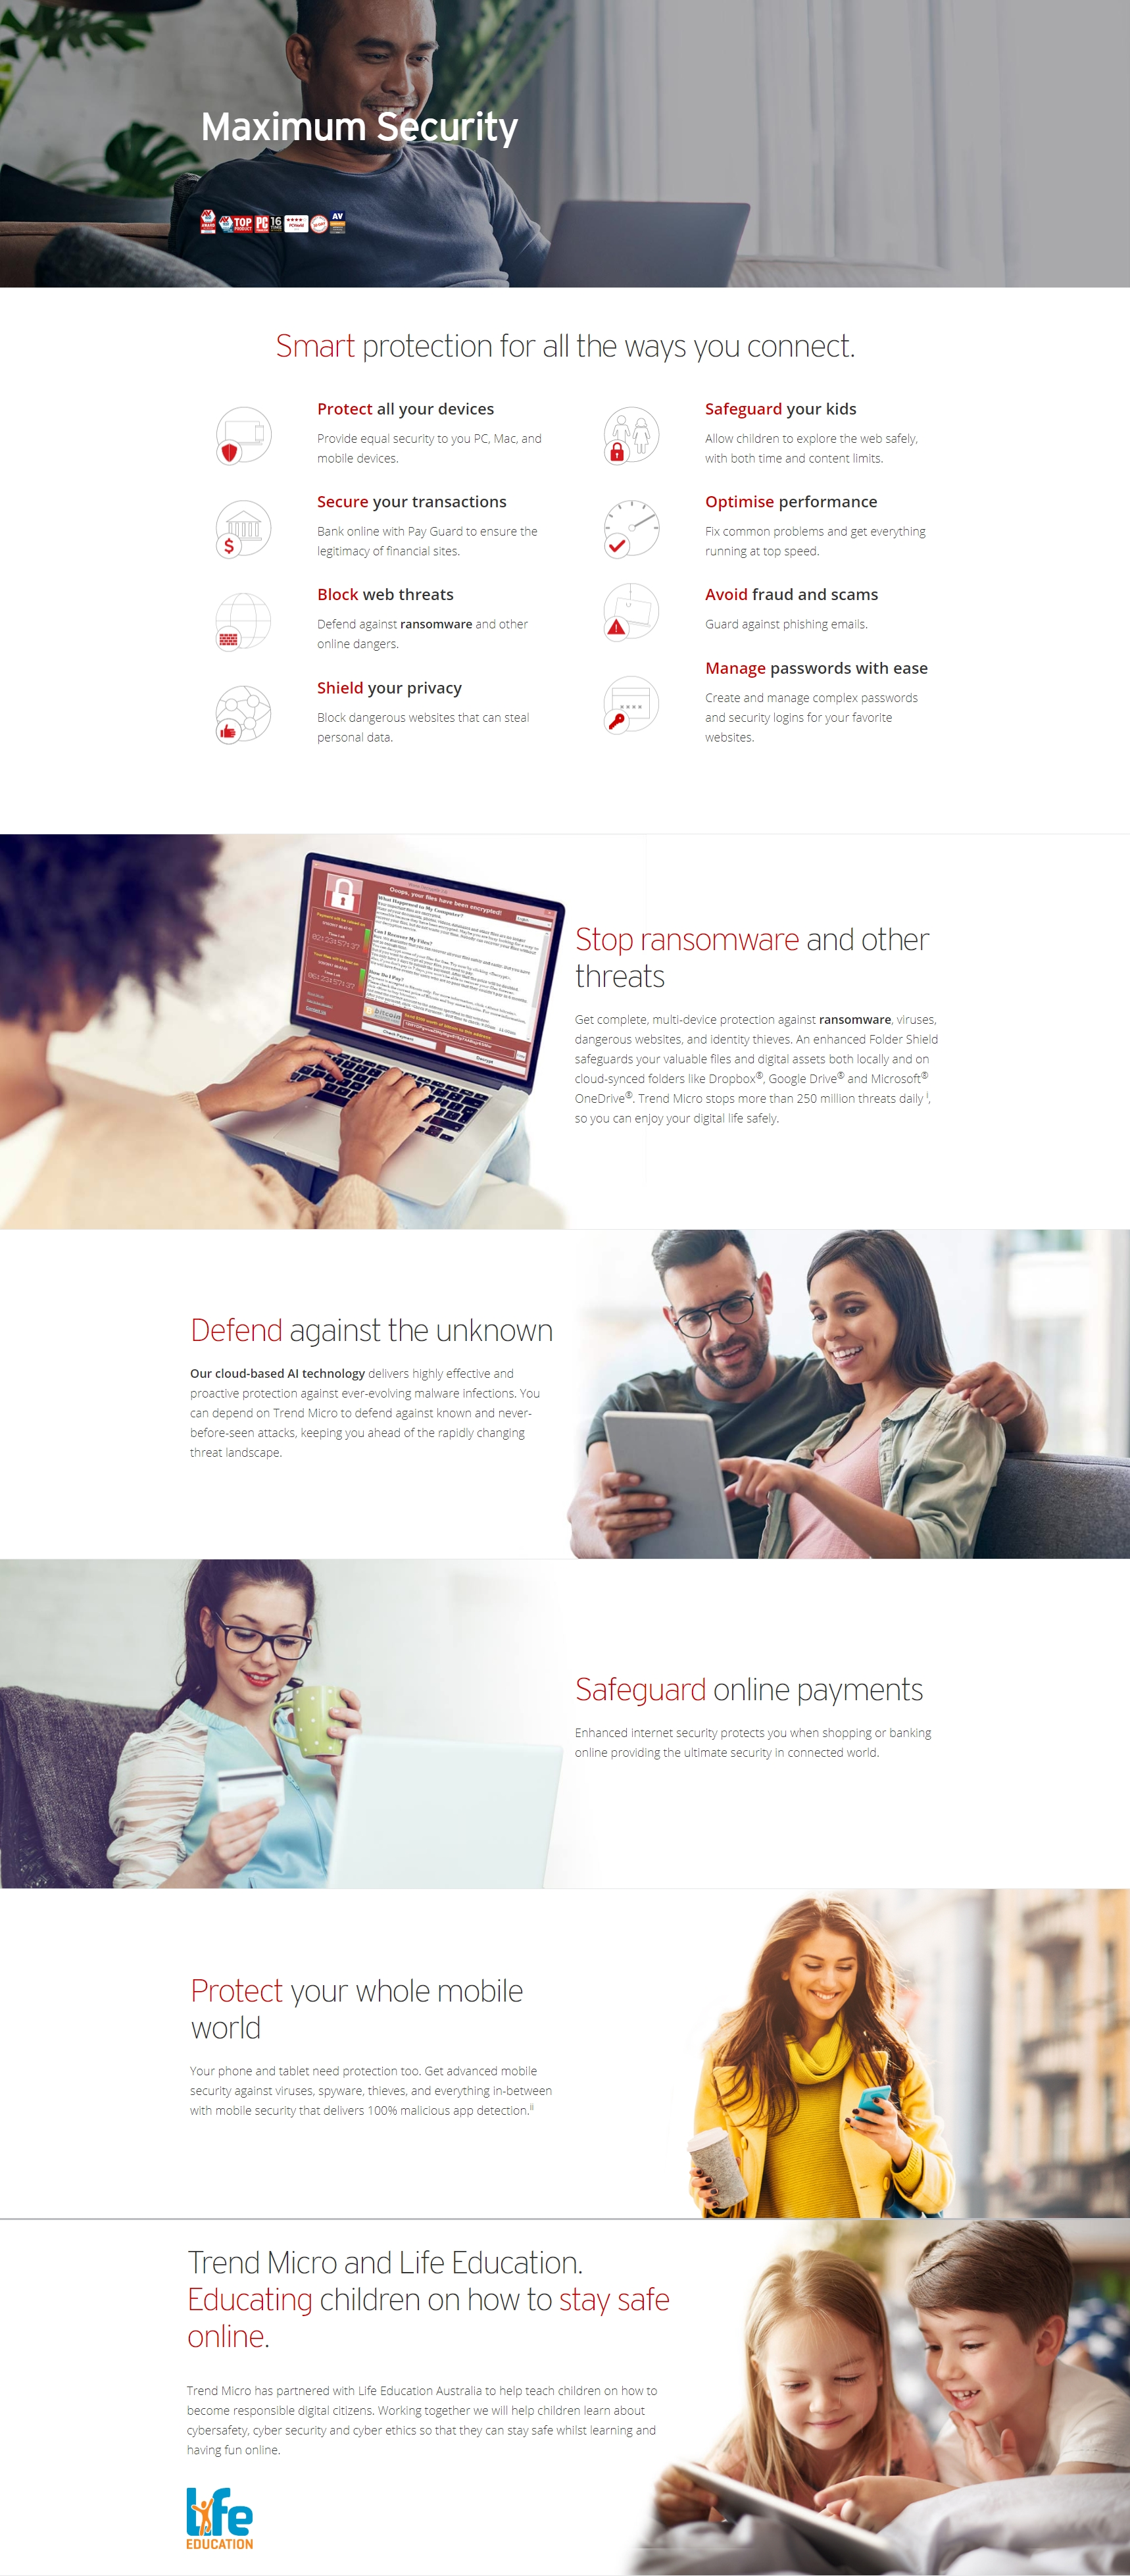 A large marketing image providing additional information about the product Trend Micro Maximum Security 5 Device 24 Month Retail Pack - Mini Box - Additional alt info not provided